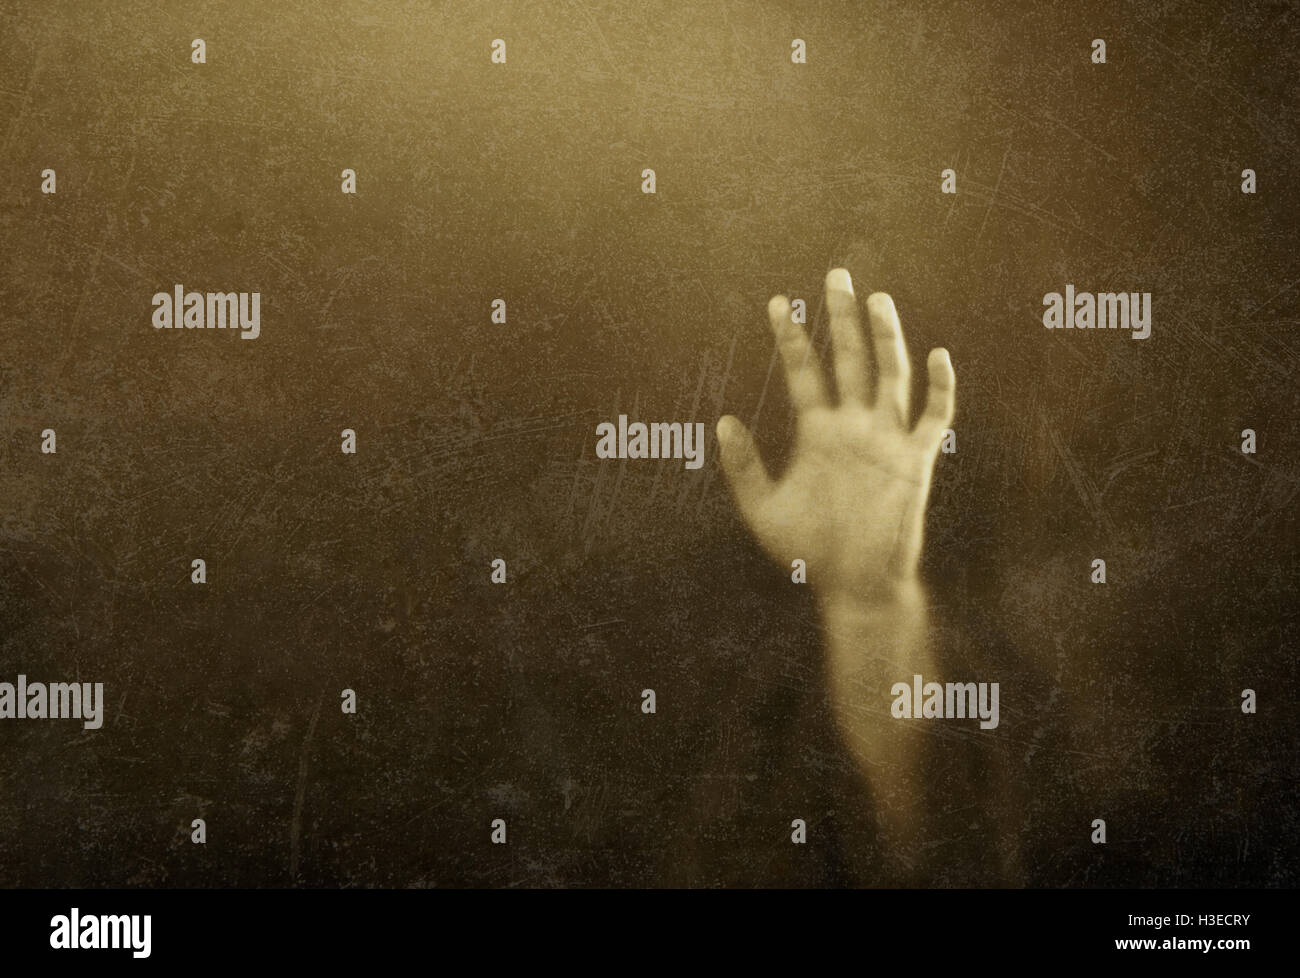 Shadowy figure behind dusty scratched glass - Stock Image